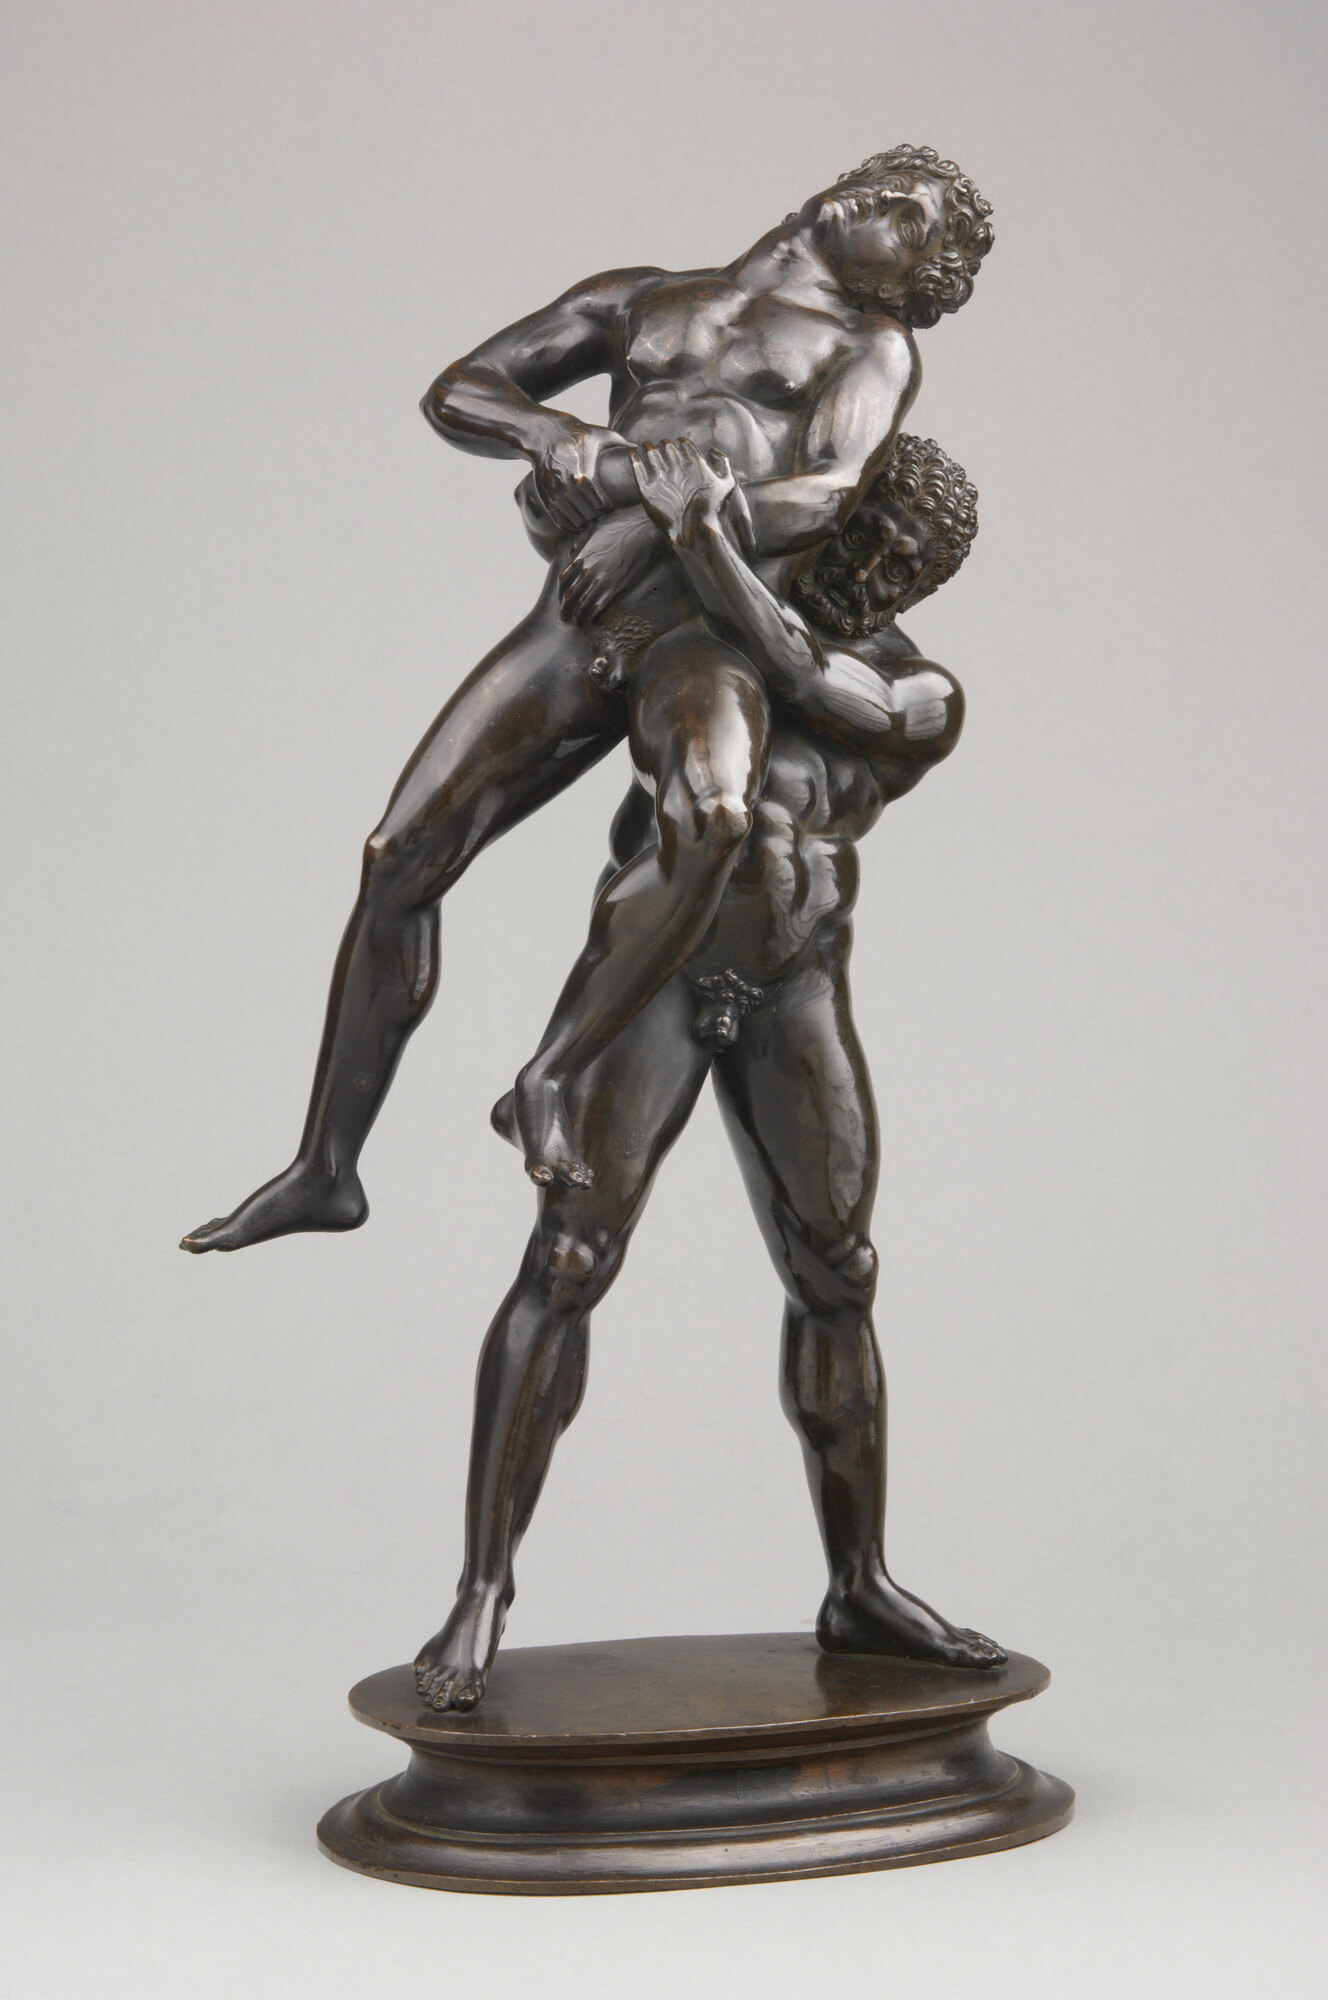 Two nude men wrestling, one holding the other aloft.